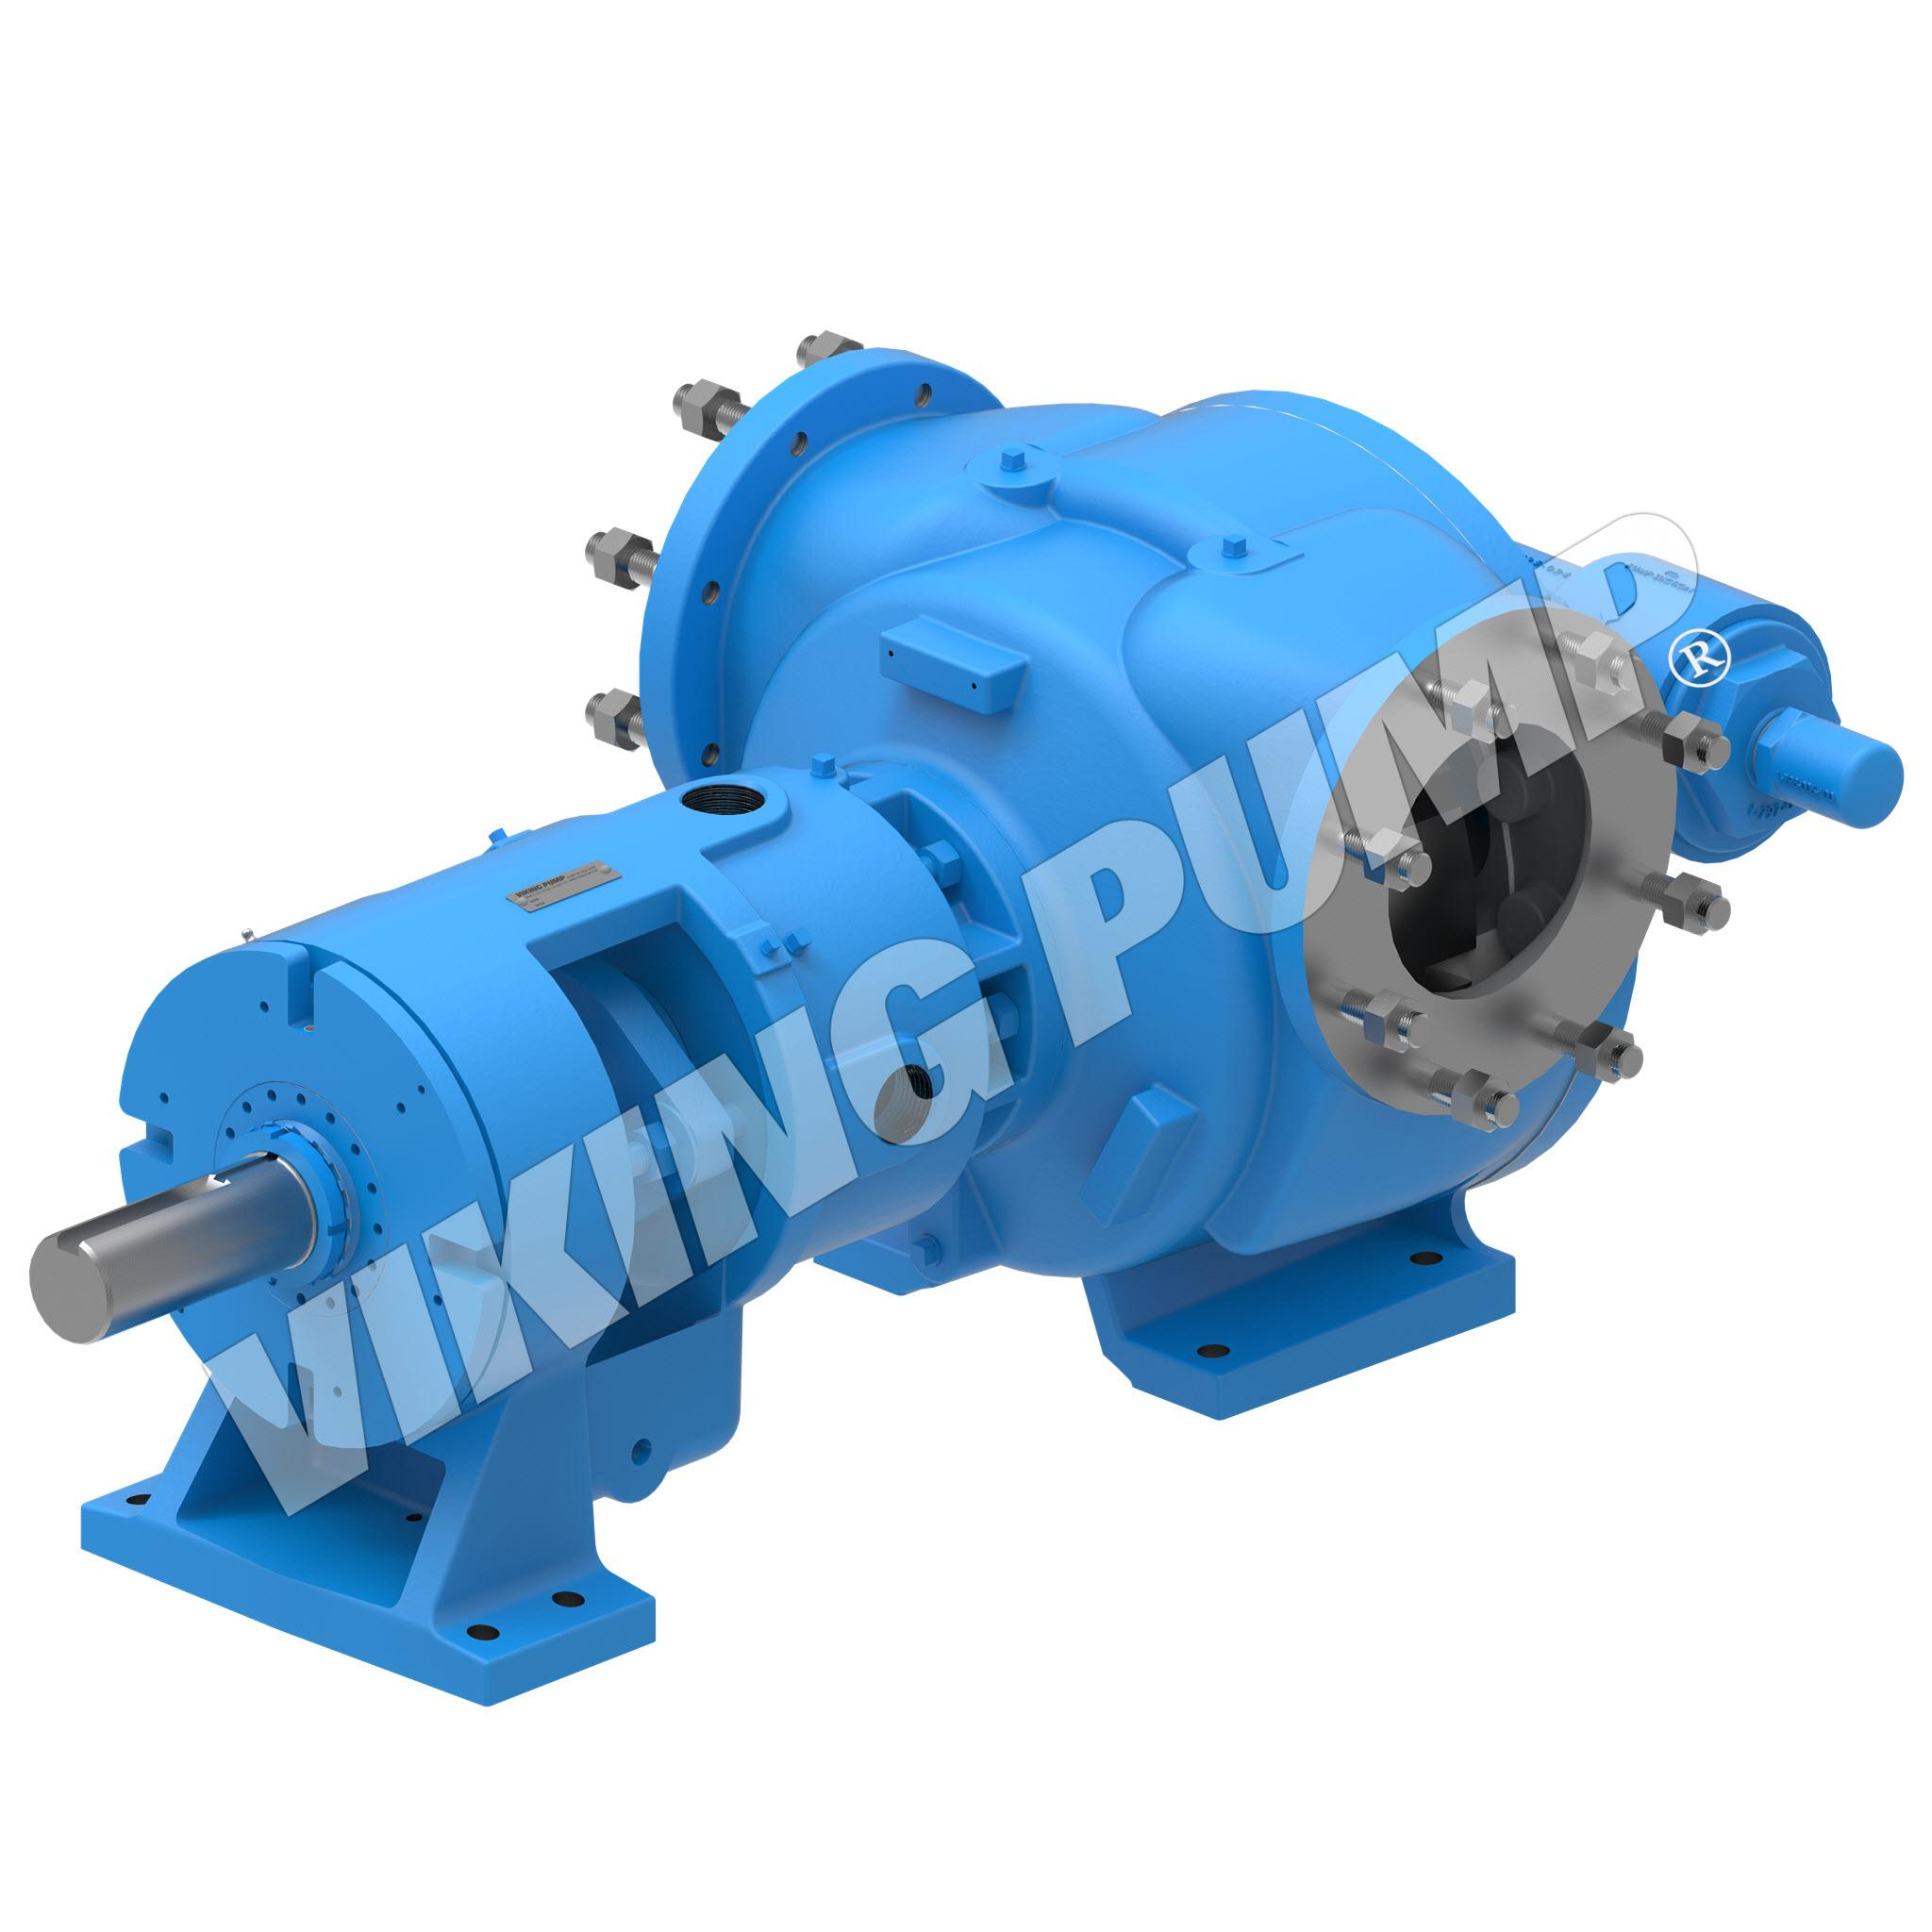 Model N4327A, Foot Mounted, Mechanical Seal, Relief Valve Pump